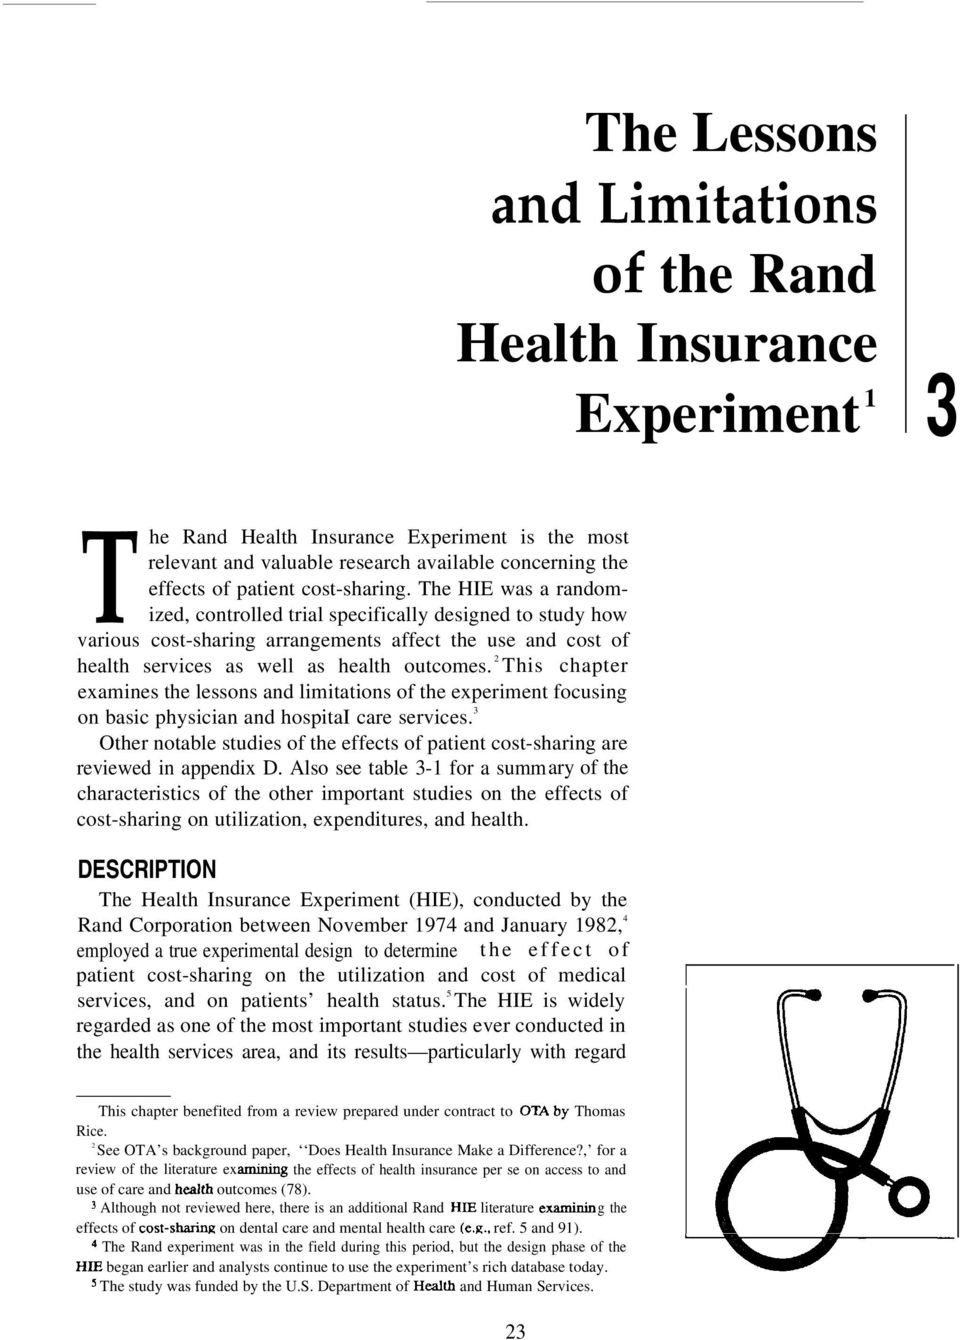 2 This chapter examines the lessons and limitations of the experiment focusing on basic physician and hospitai care services.